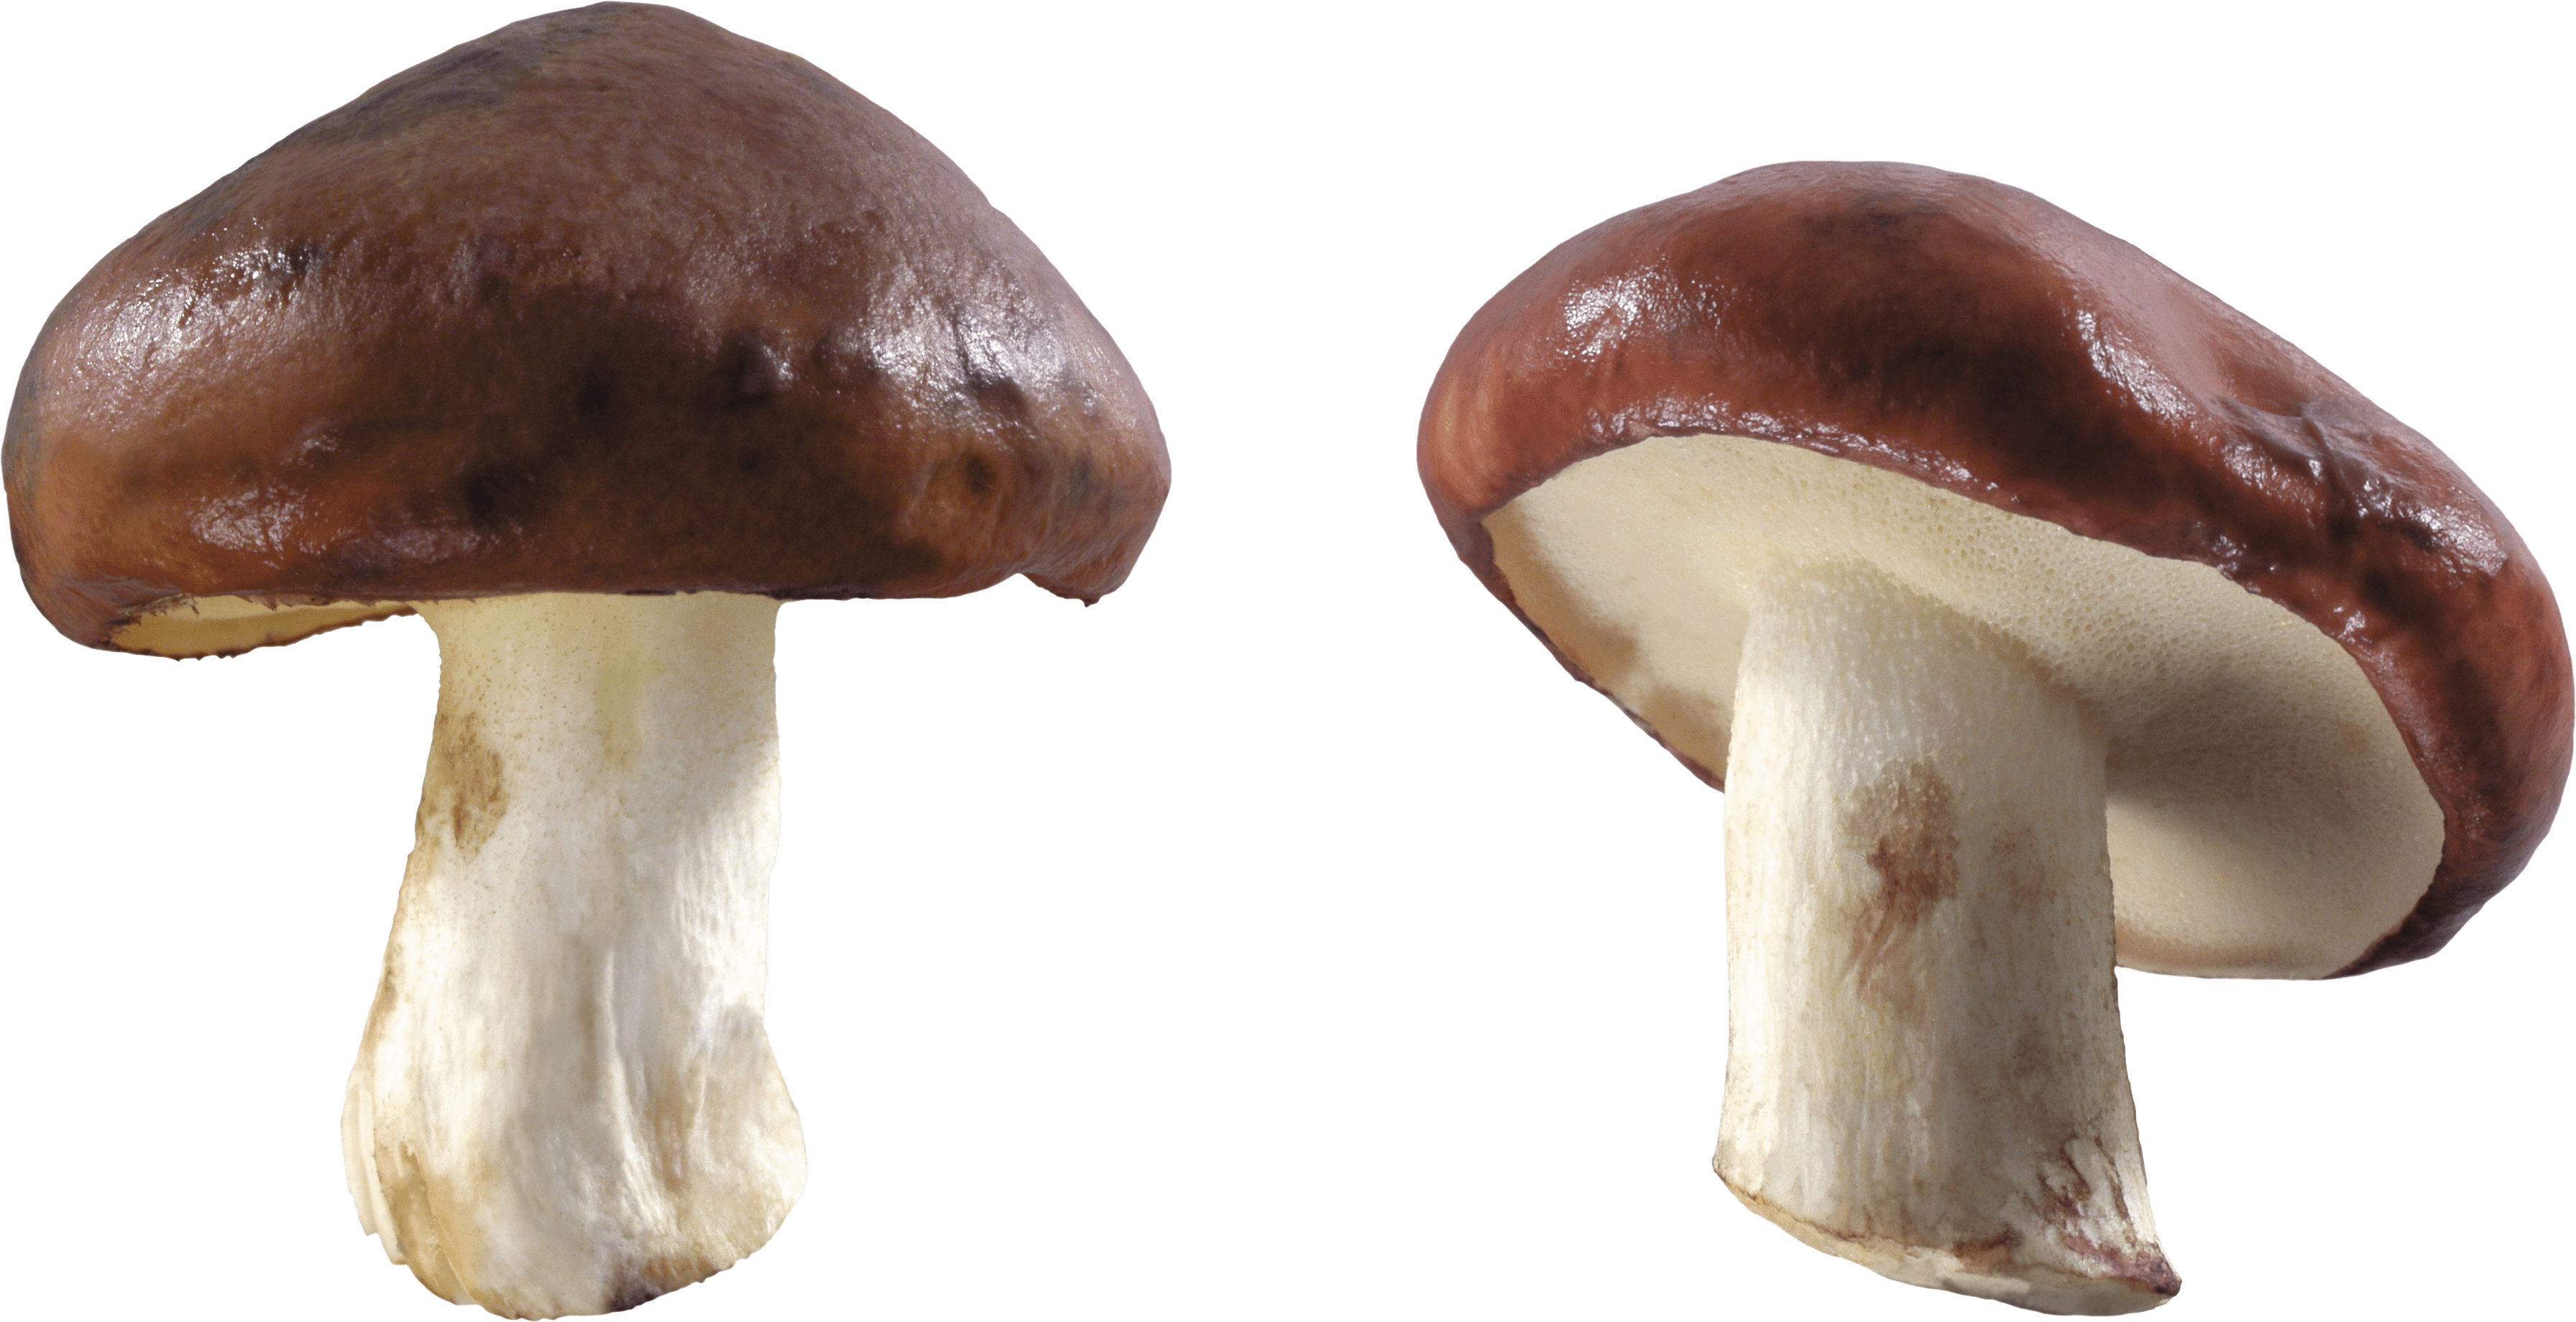 Free download mushroom images 42872 free icons and png backgrounds free download mushroom images toneelgroepblik Image collections